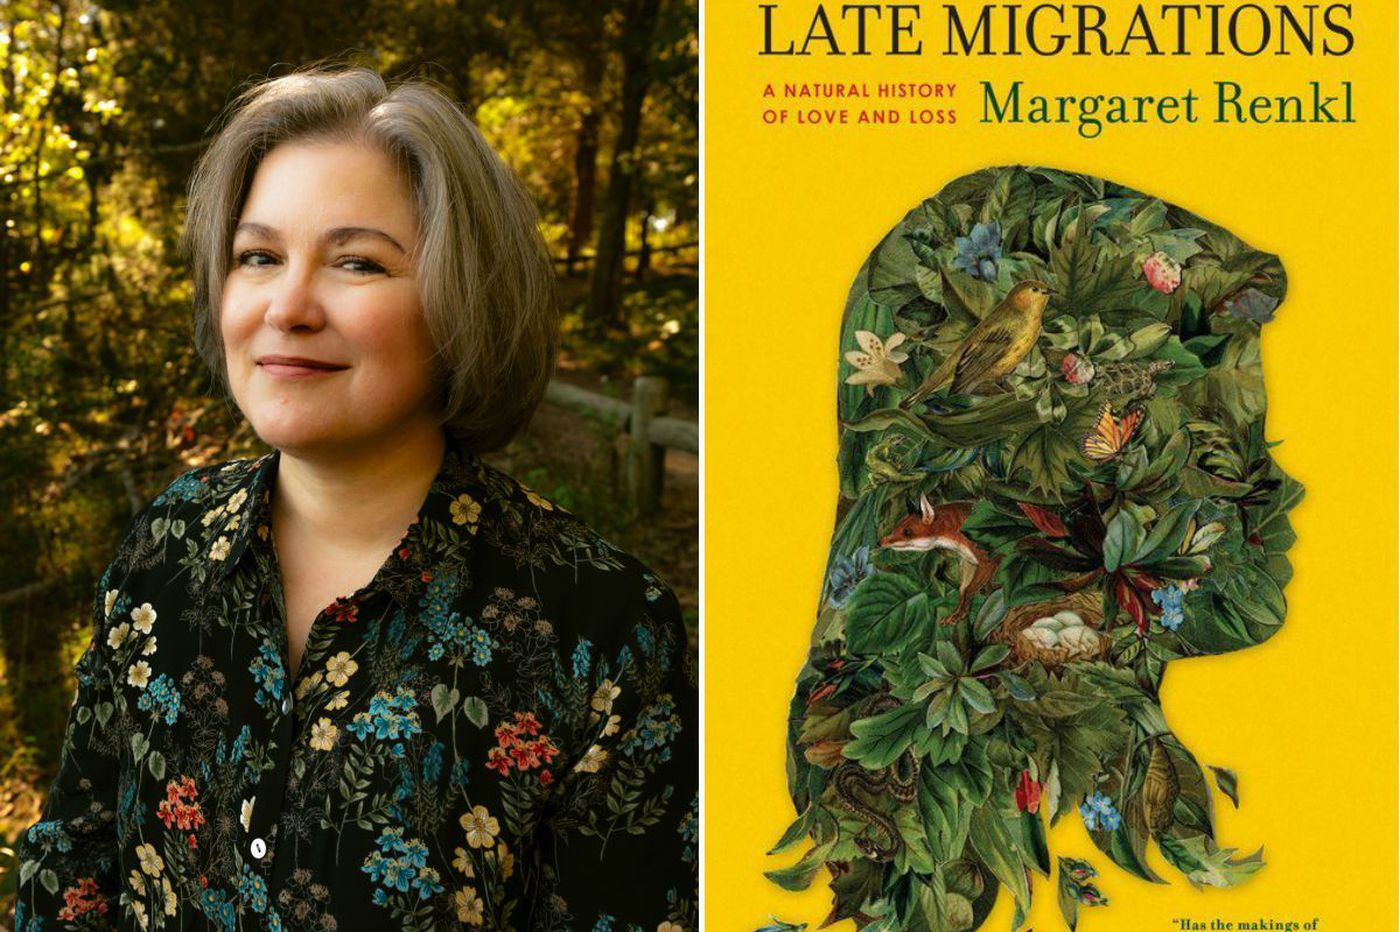 'Late Migrations' by Margaret Renkl: Nature, family, praise, in a book made of summer